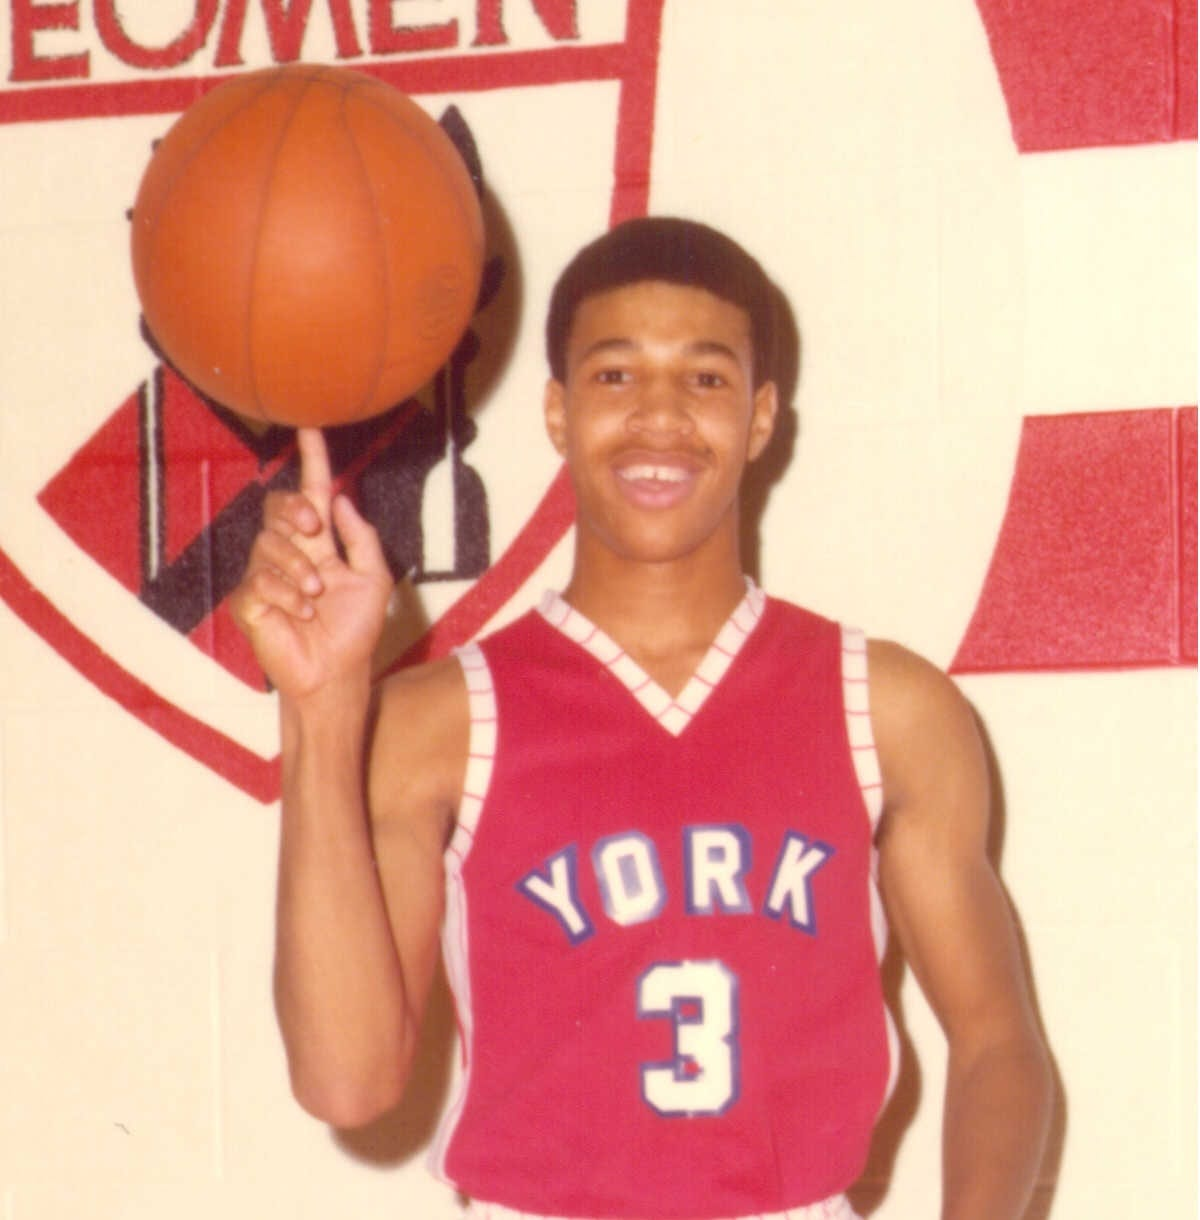 Paul Jones, Alumni